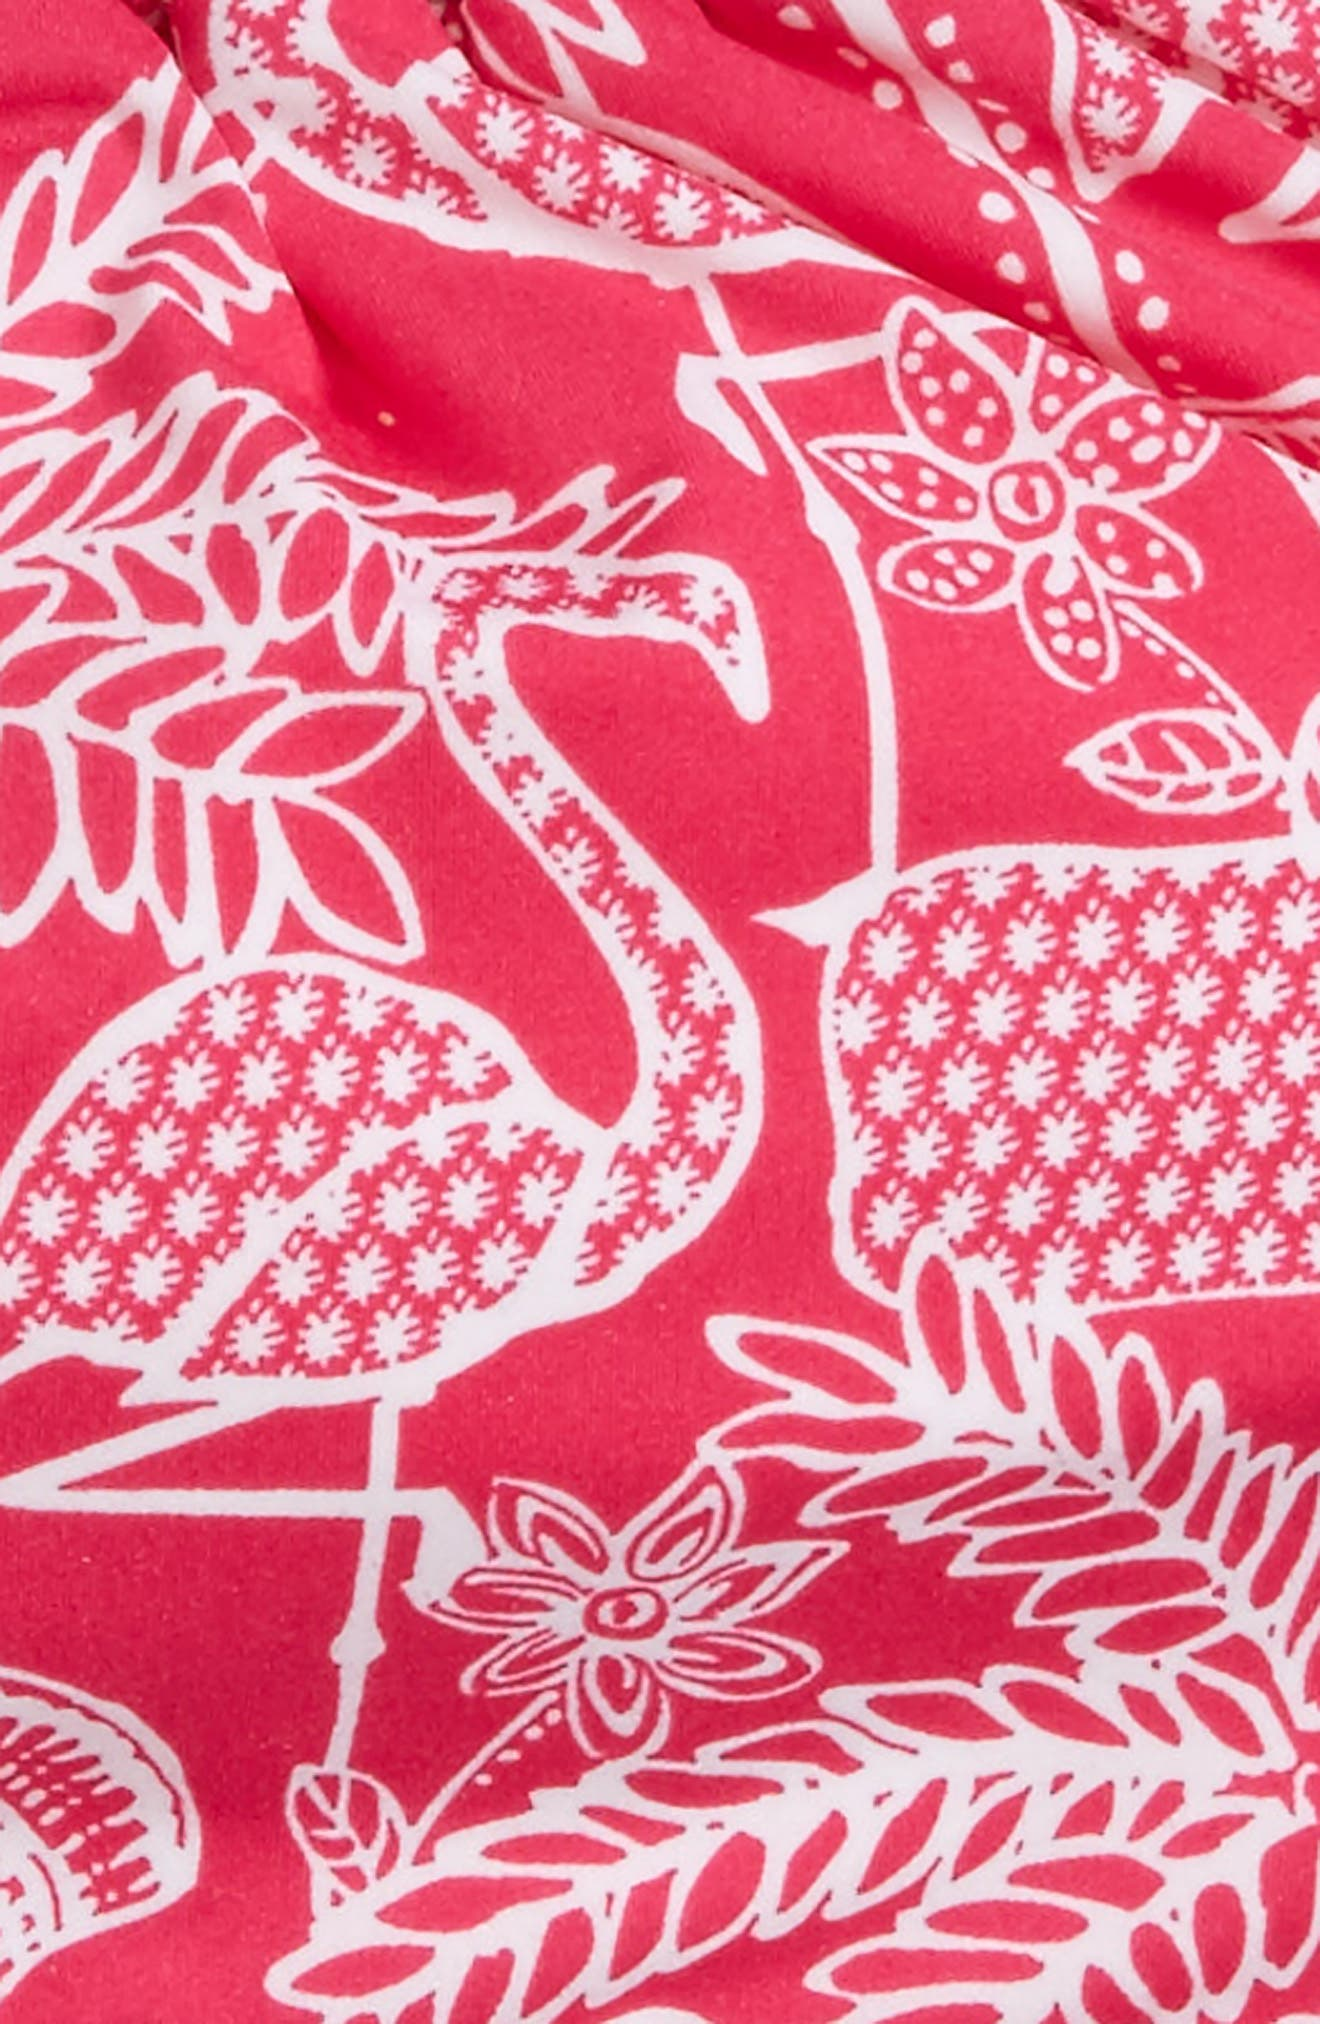 Flamingo Print Reversible Two-Piece Halter Swimsuit,                             Alternate thumbnail 3, color,                             Rhododendron